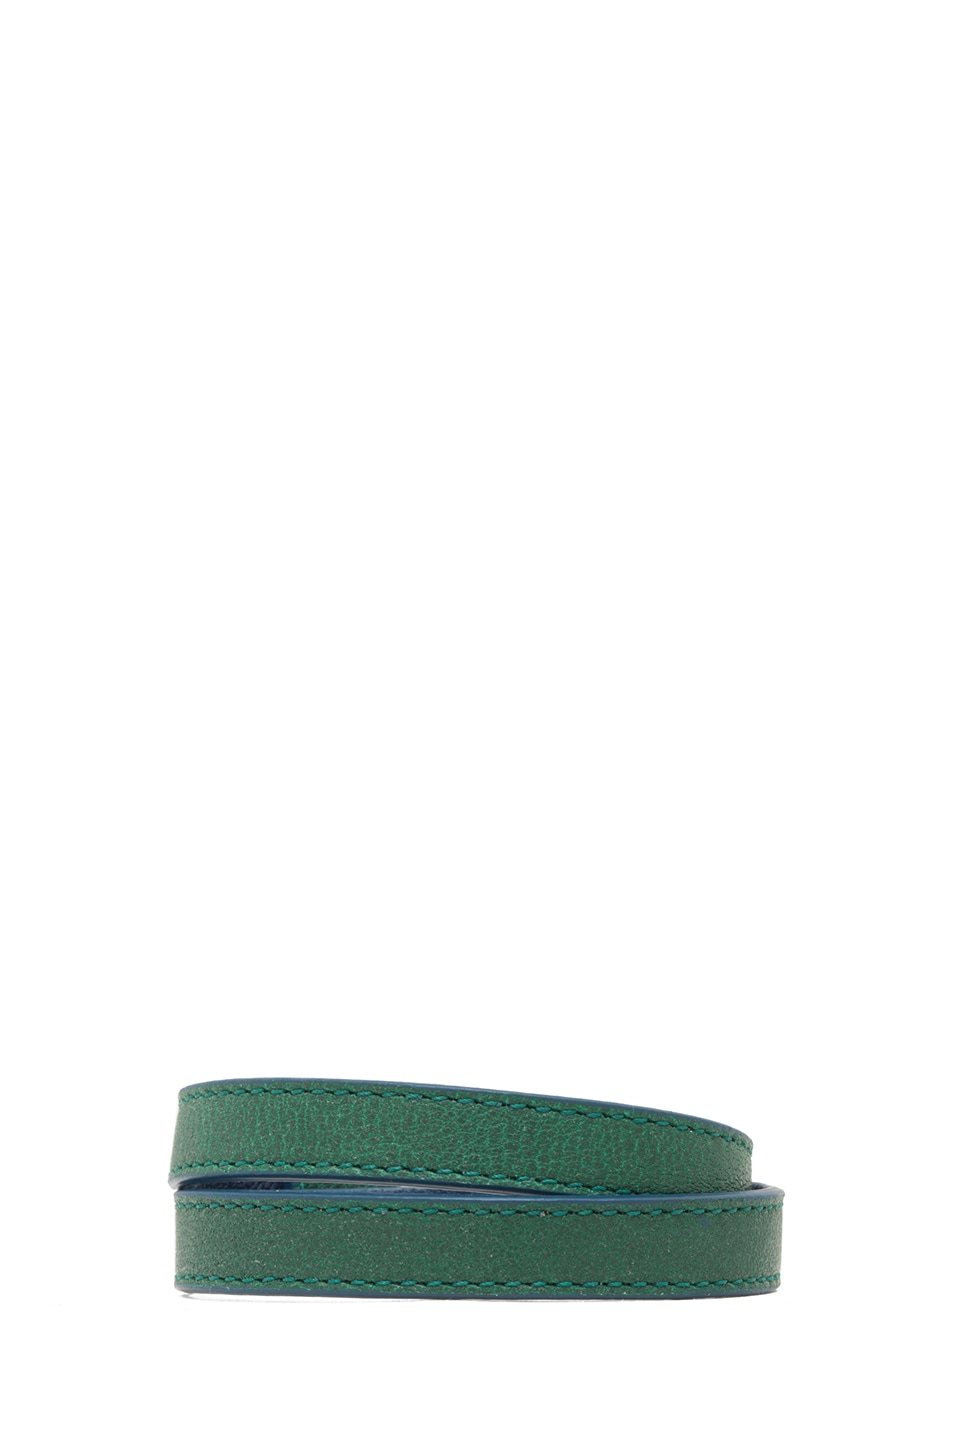 Image 3 of Chloe Marcie Leather Wrap Bracelet in Racing Green